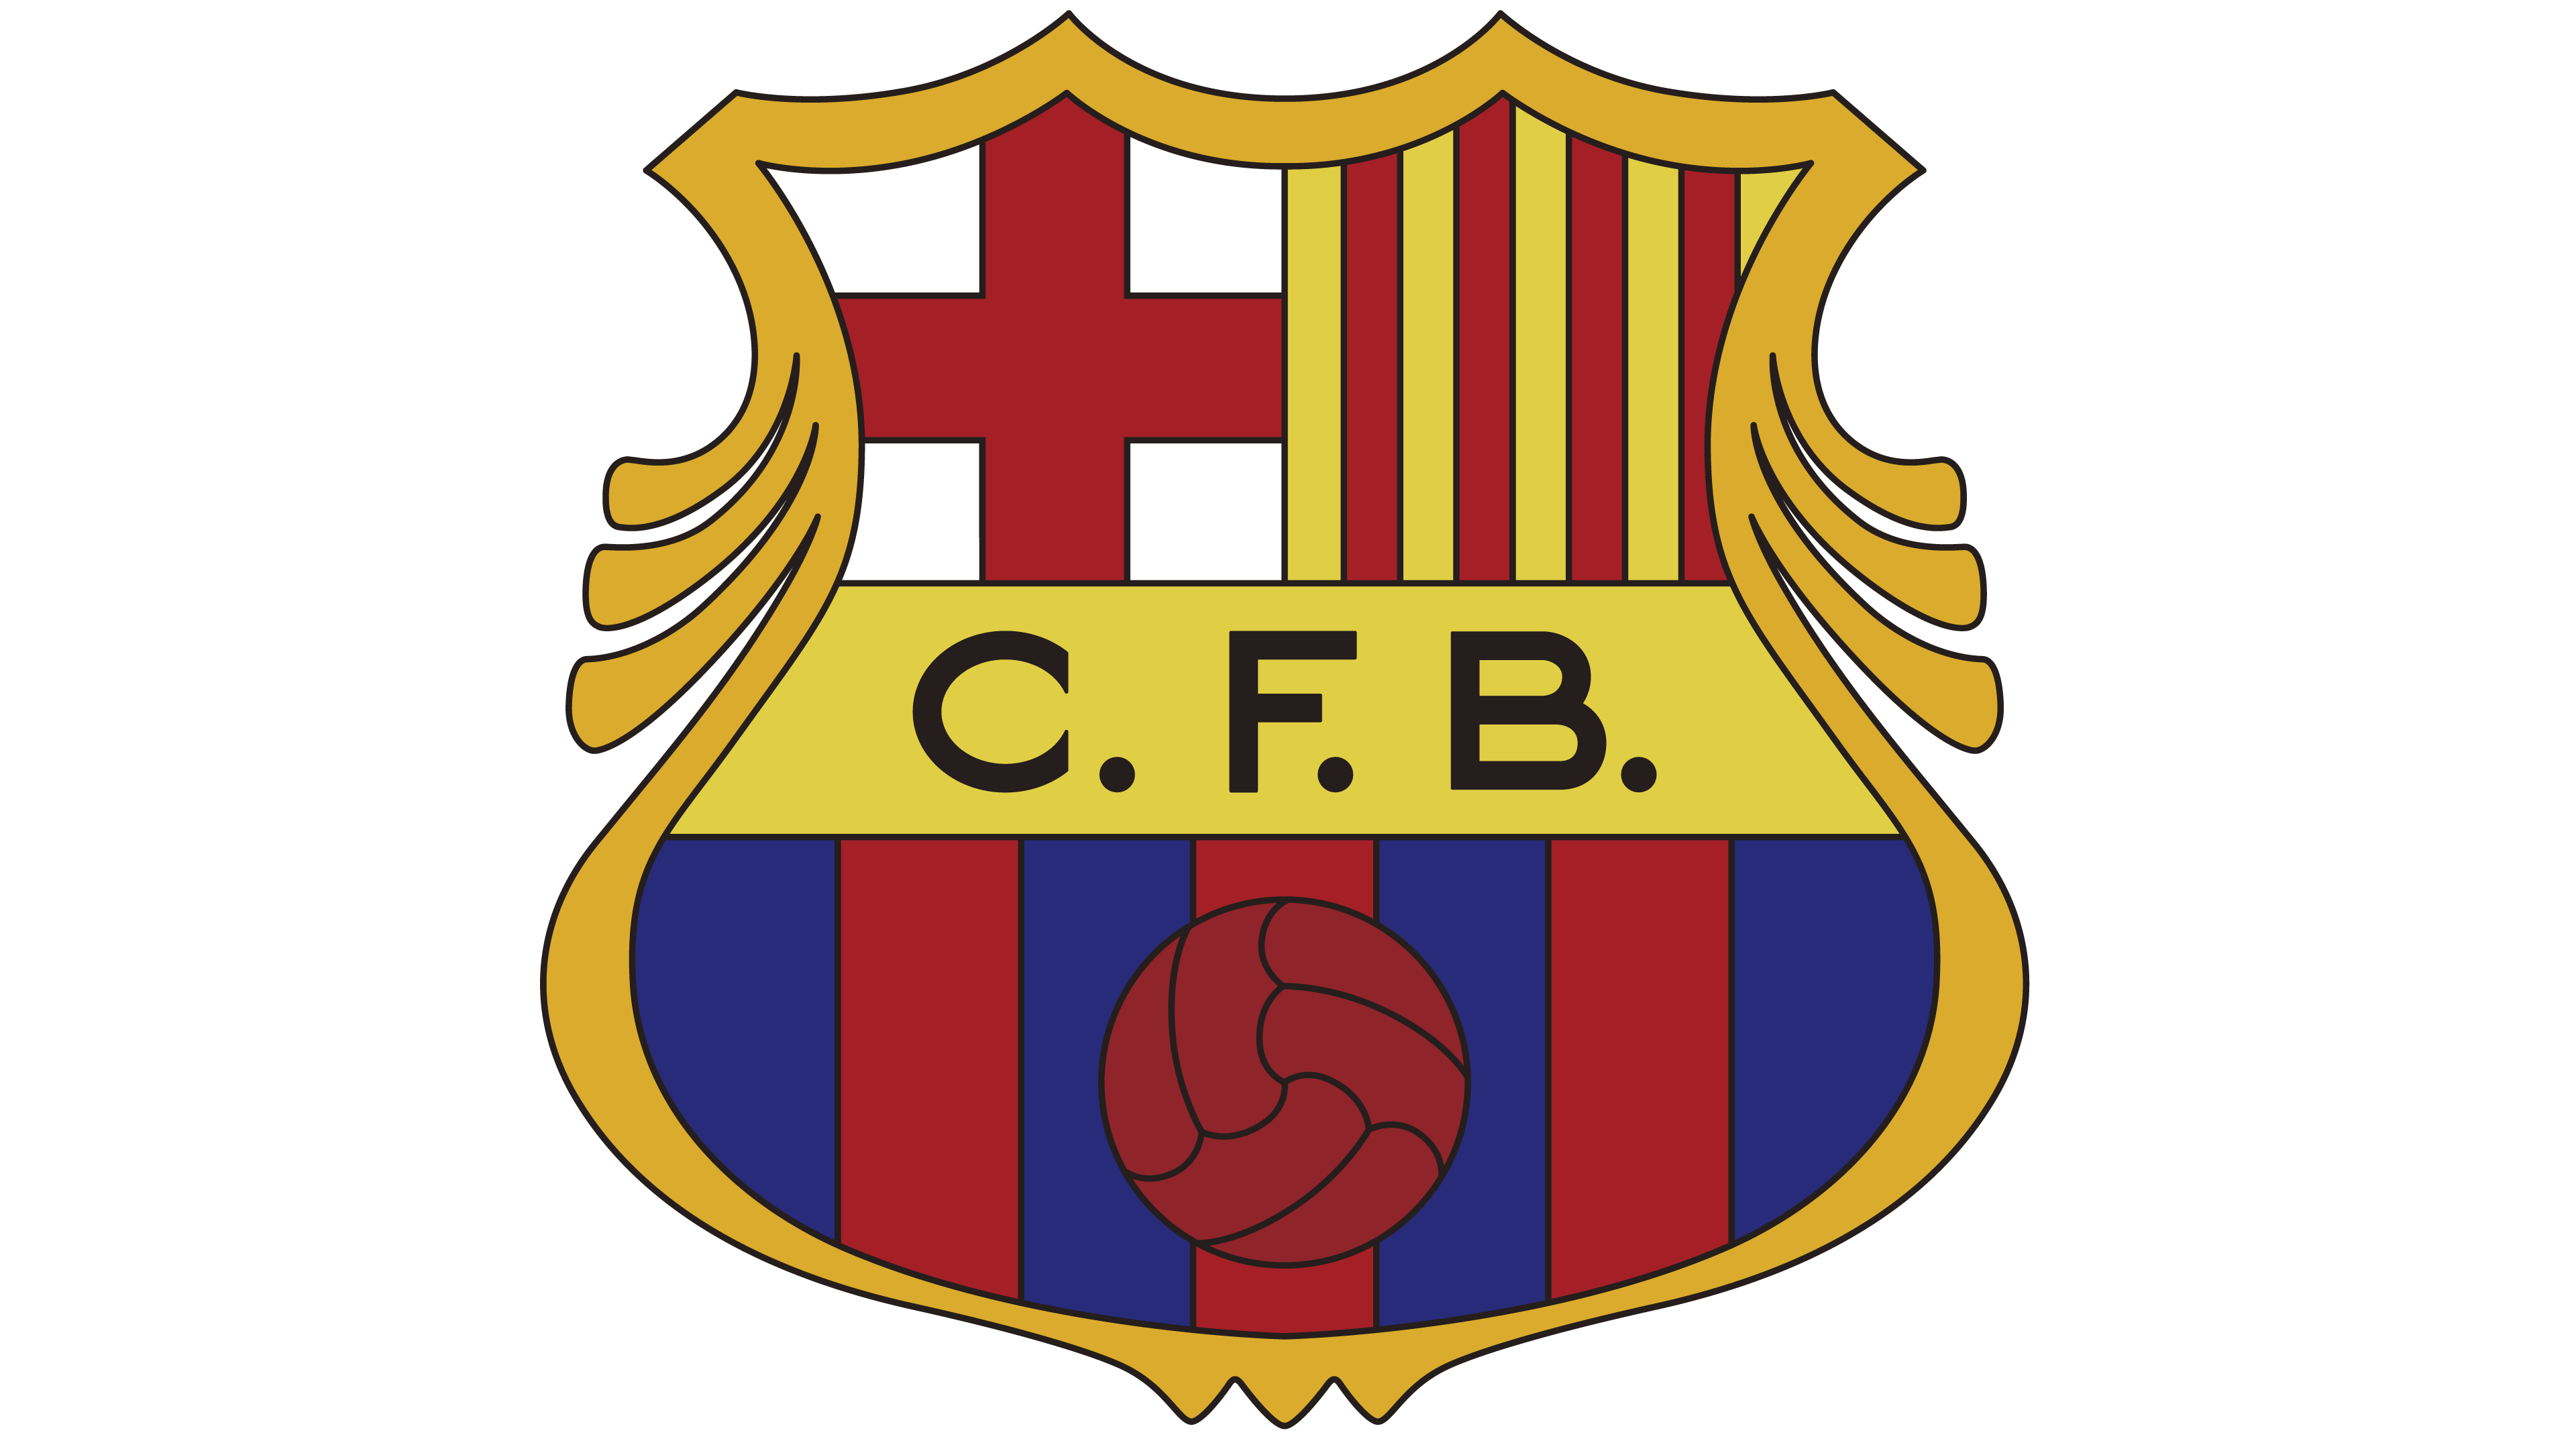 barcelona logo interesting history the team name and #12153